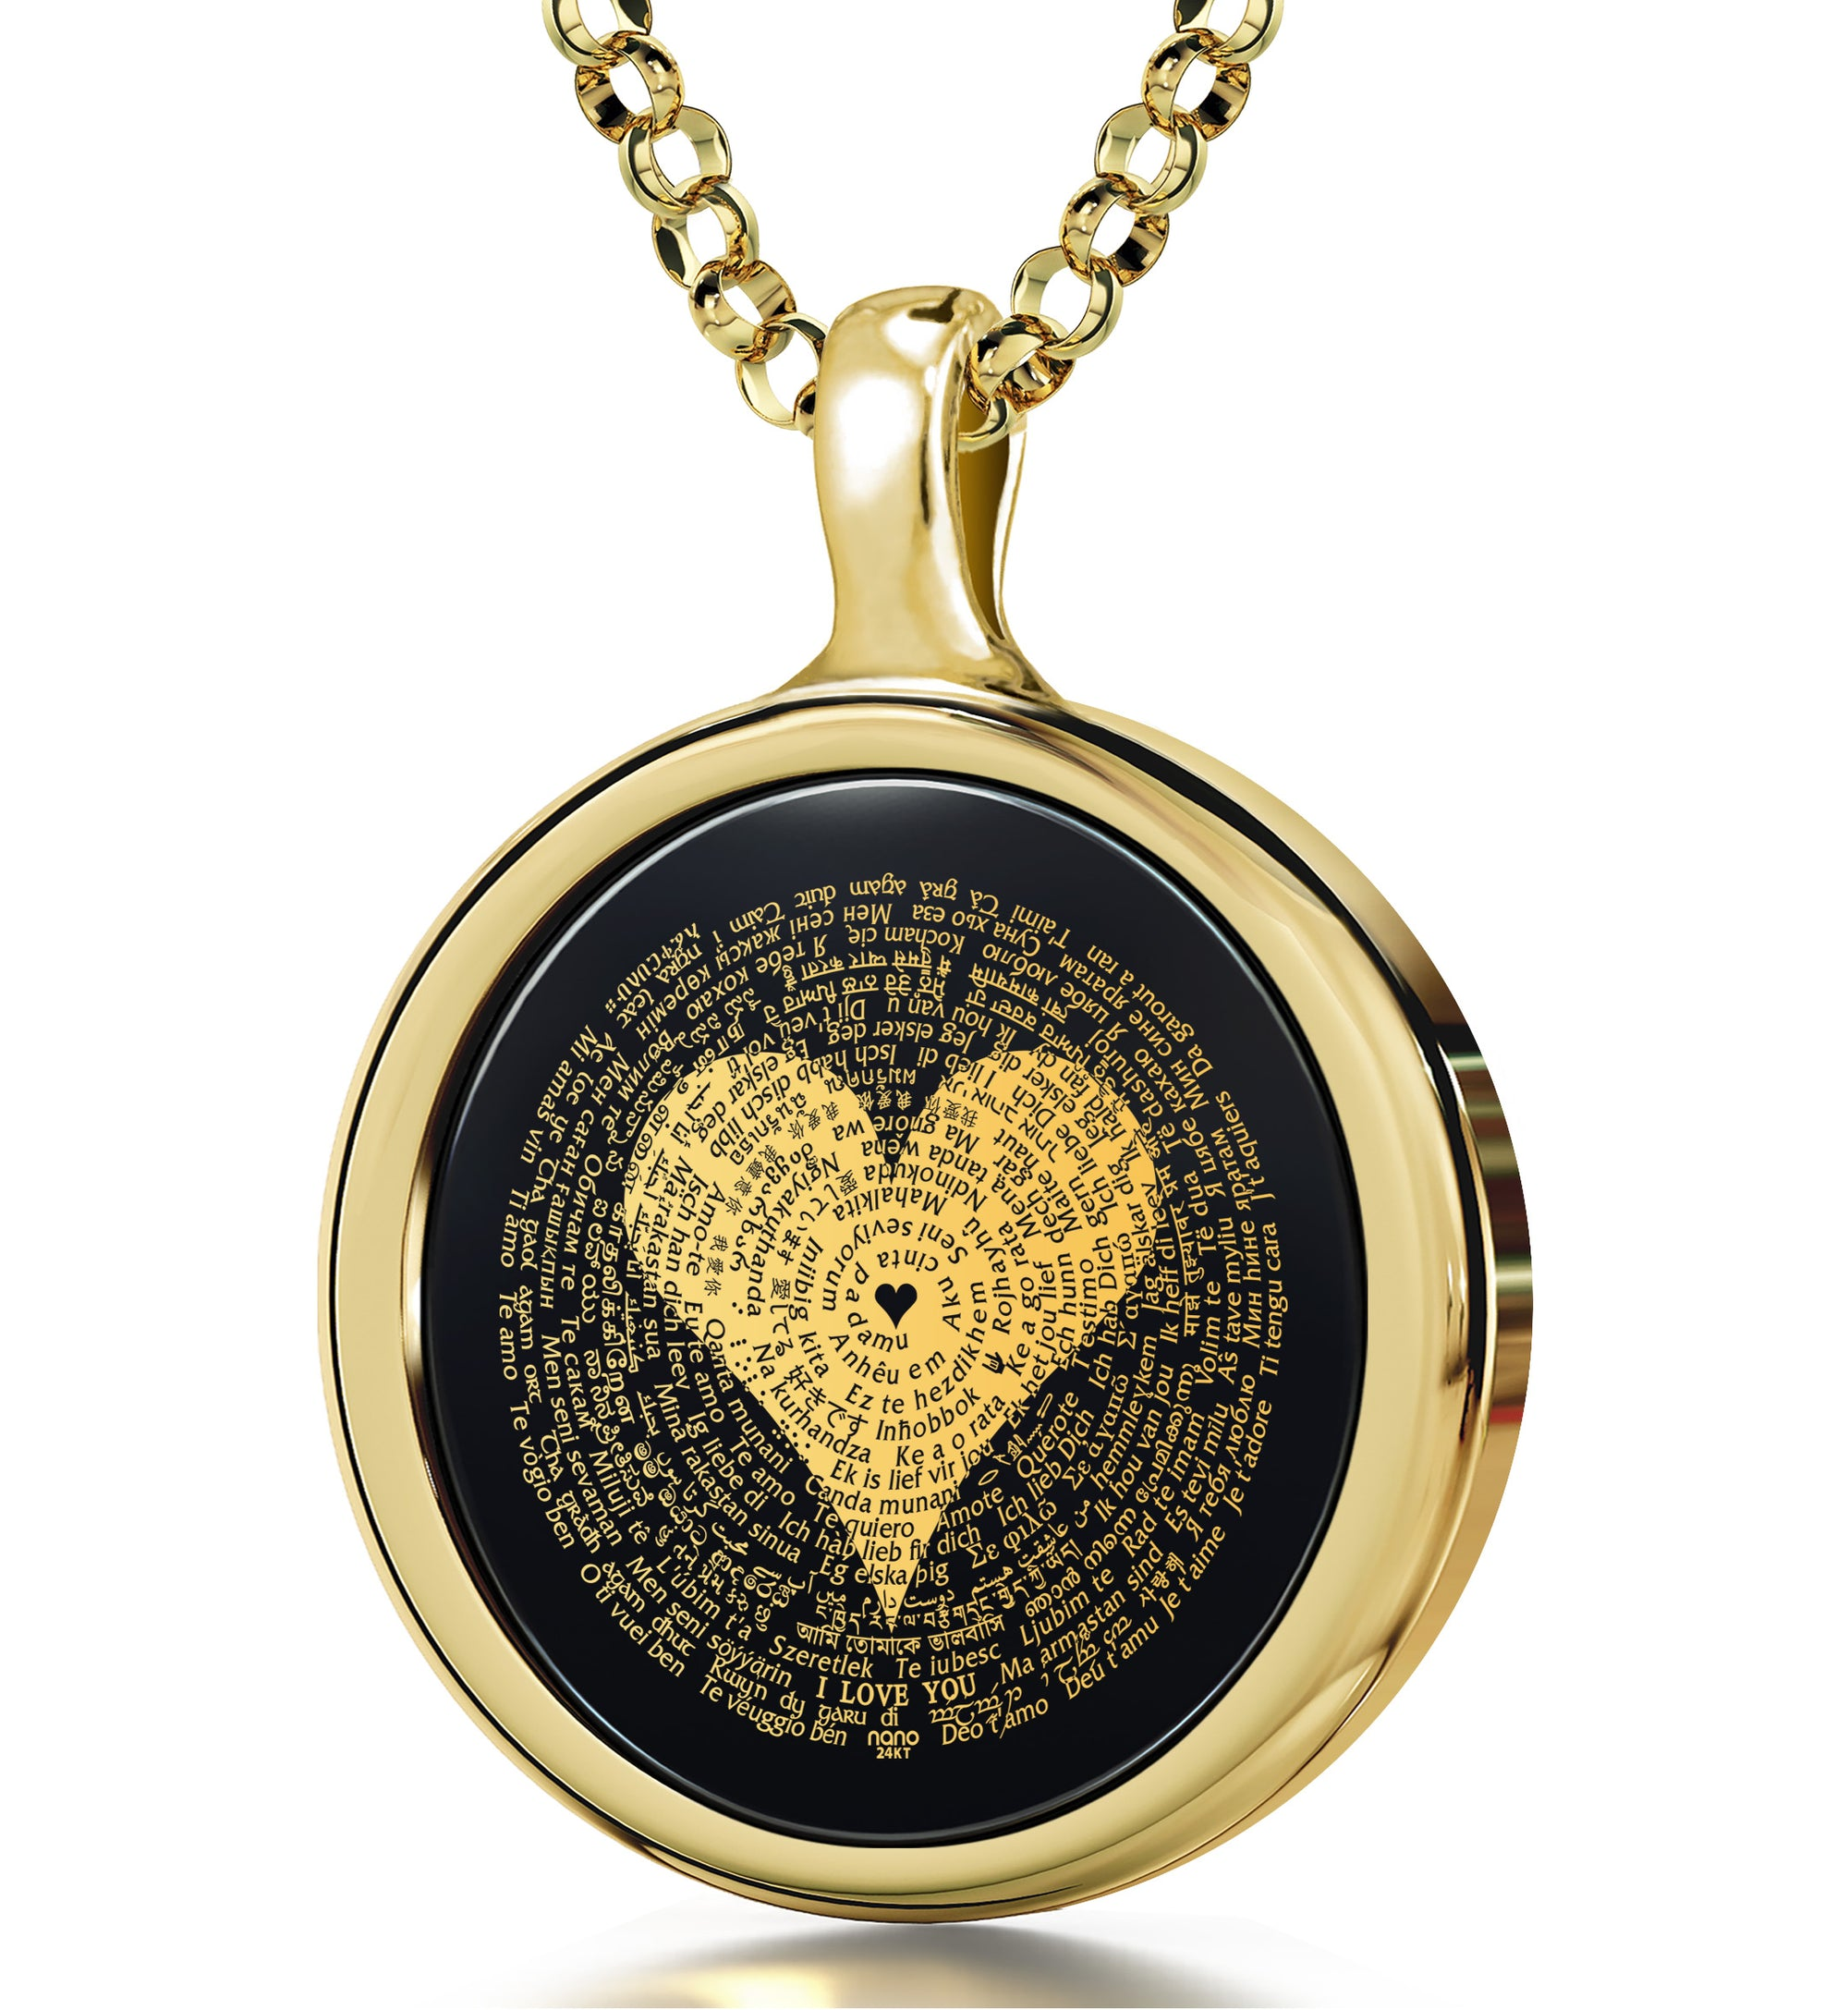 I Love You Necklace in 120 Languages 24k Gold Inscribed on Round Onyx - NanoStyle Jewelry